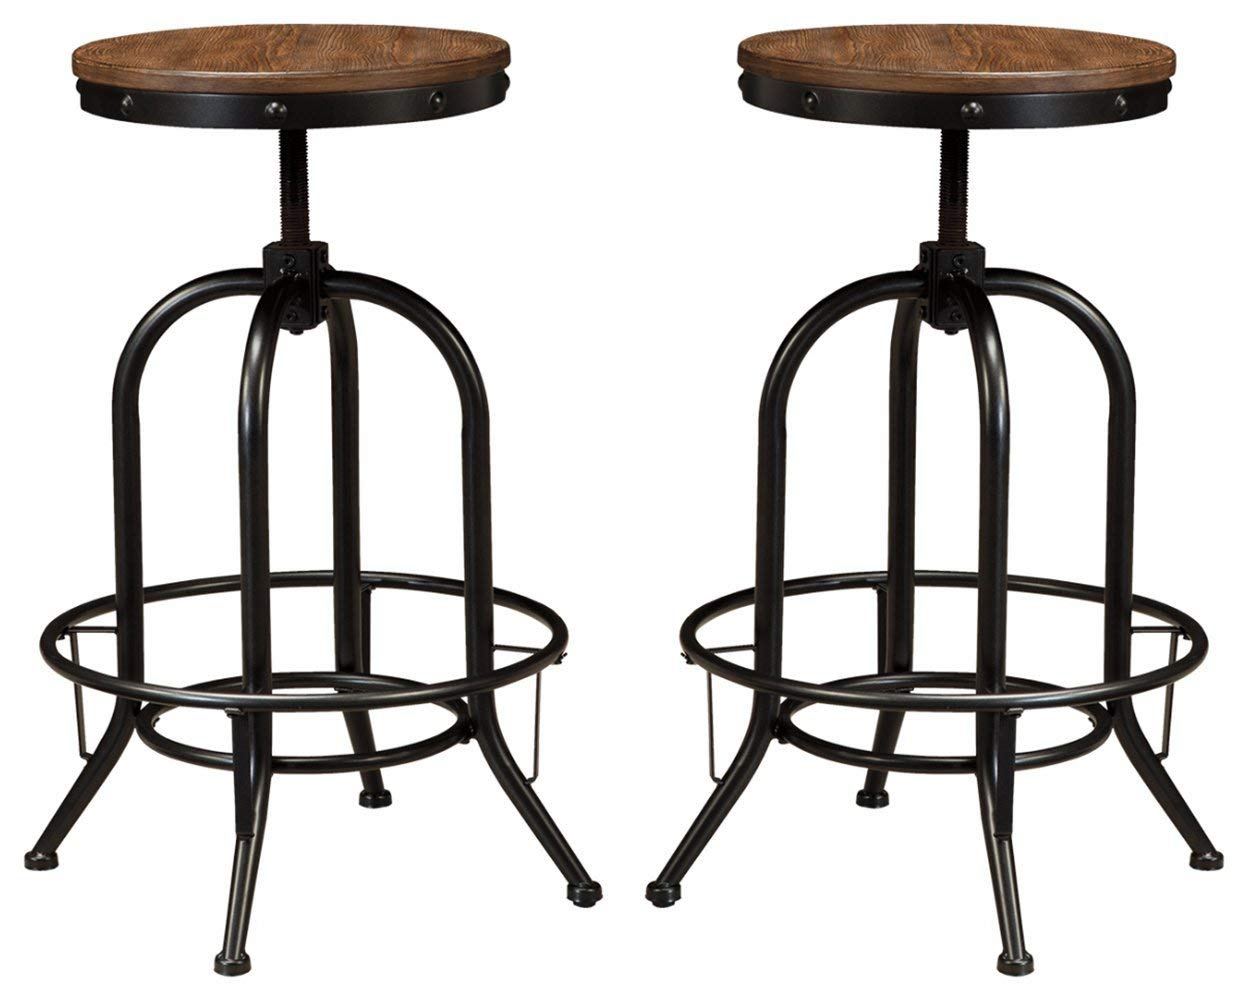 Farmhouse Vibes | Apartment Decor | Rustic Bar Stools